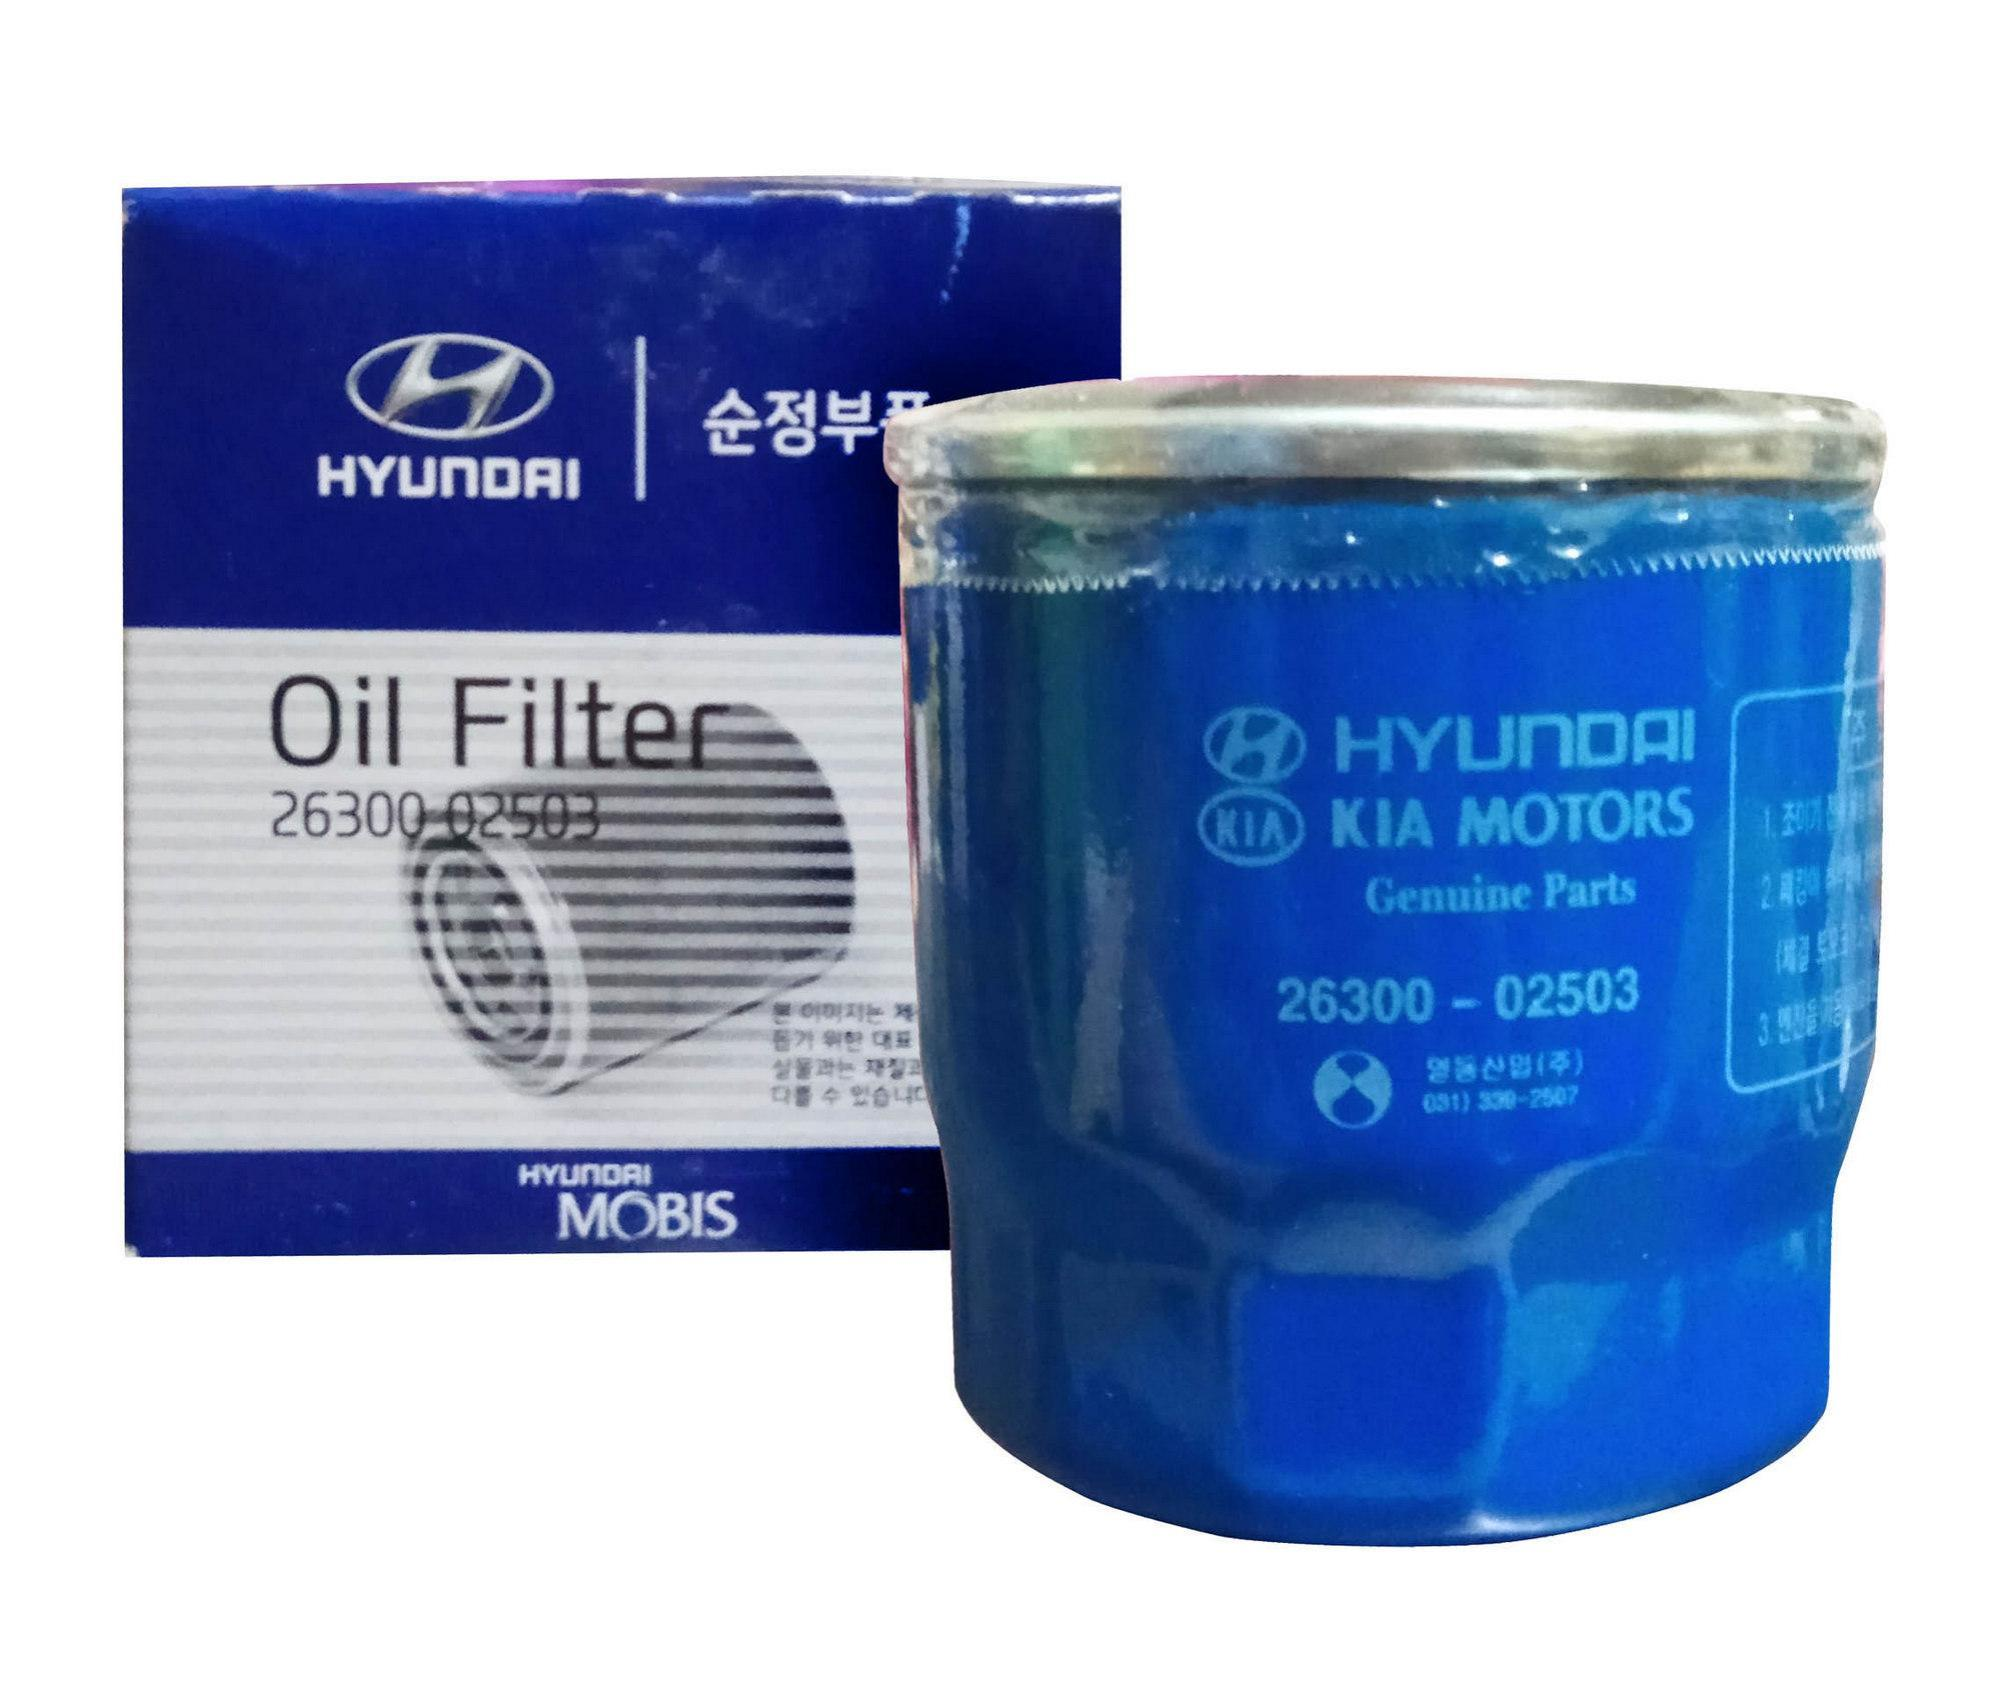 hight resolution of hyundai mobis 26300 02503 oil filter for hyundai accent getz eon i10